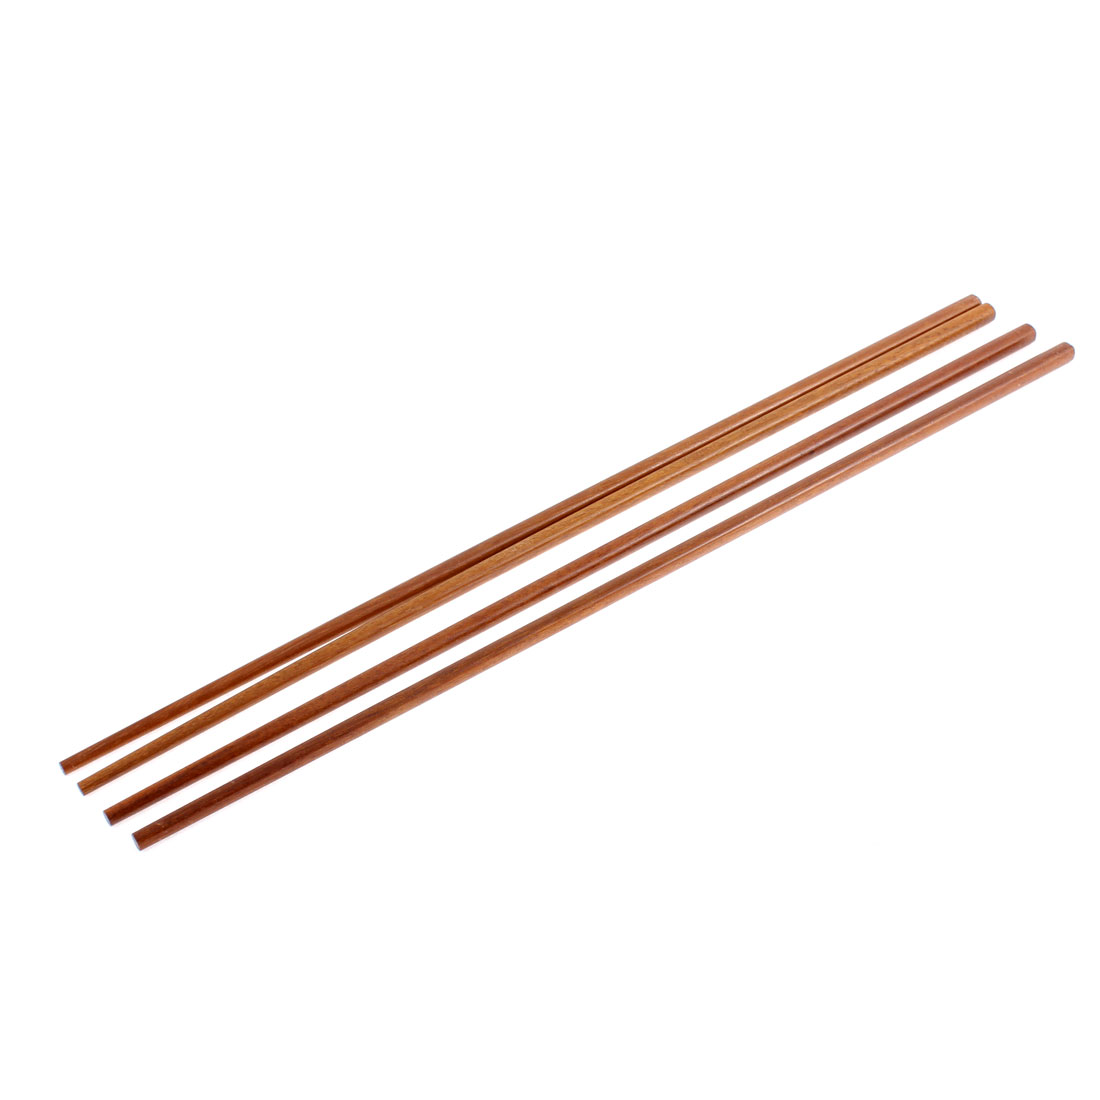 Household Noodles Cooking Wooden Chopsticks 42cm Length Brown 2 Pairs